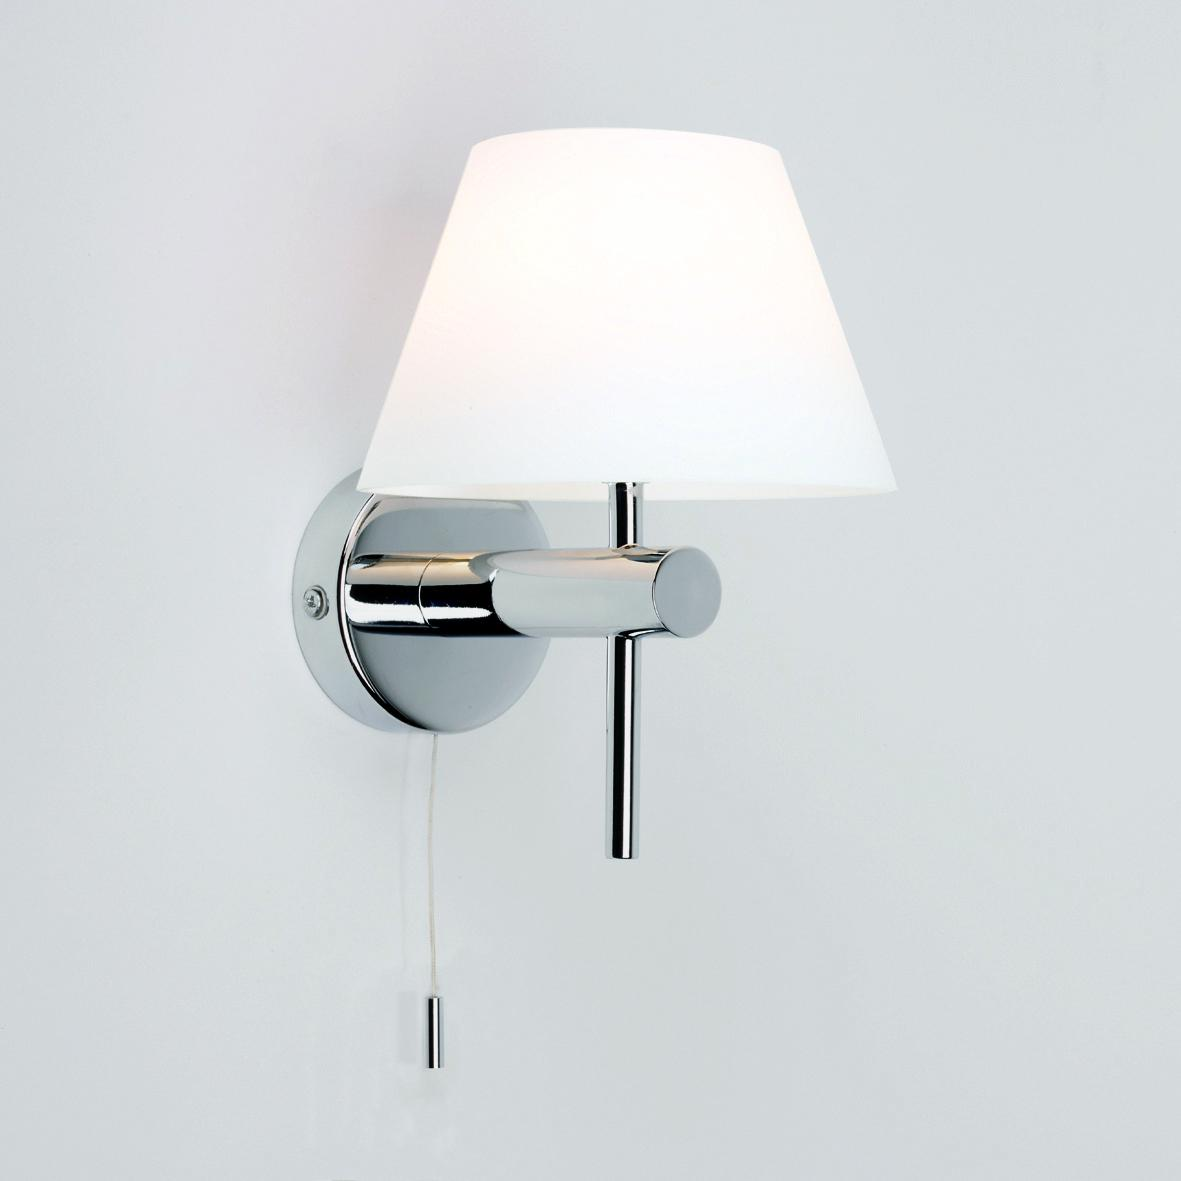 Bathroom Wall Sconces With Shades : Bathroom Wall Light Coolie Shade - Pullcord